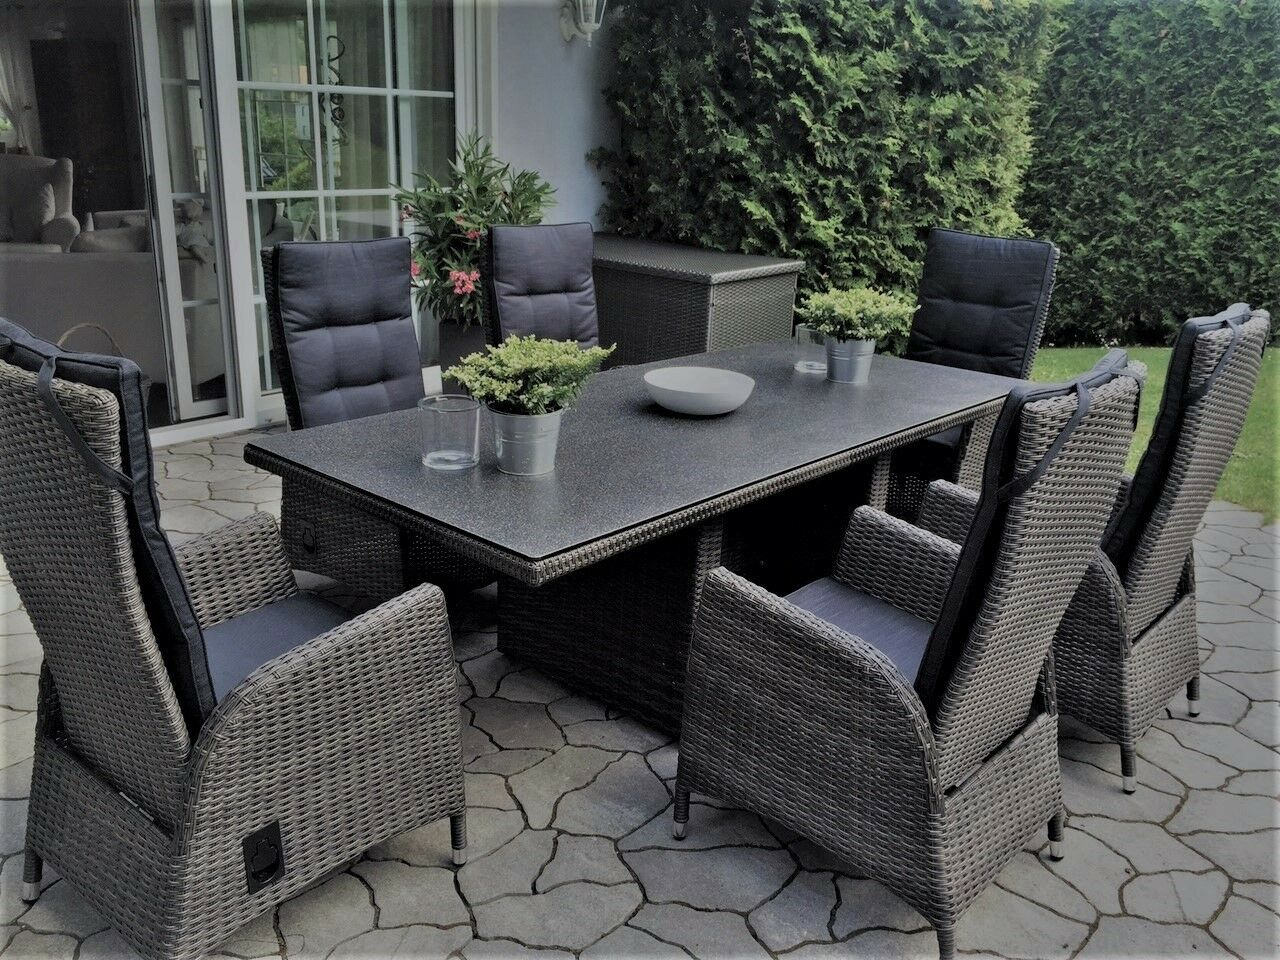 gartengarnitur polyrattan sitzgruppe gartenset gartenm bel. Black Bedroom Furniture Sets. Home Design Ideas